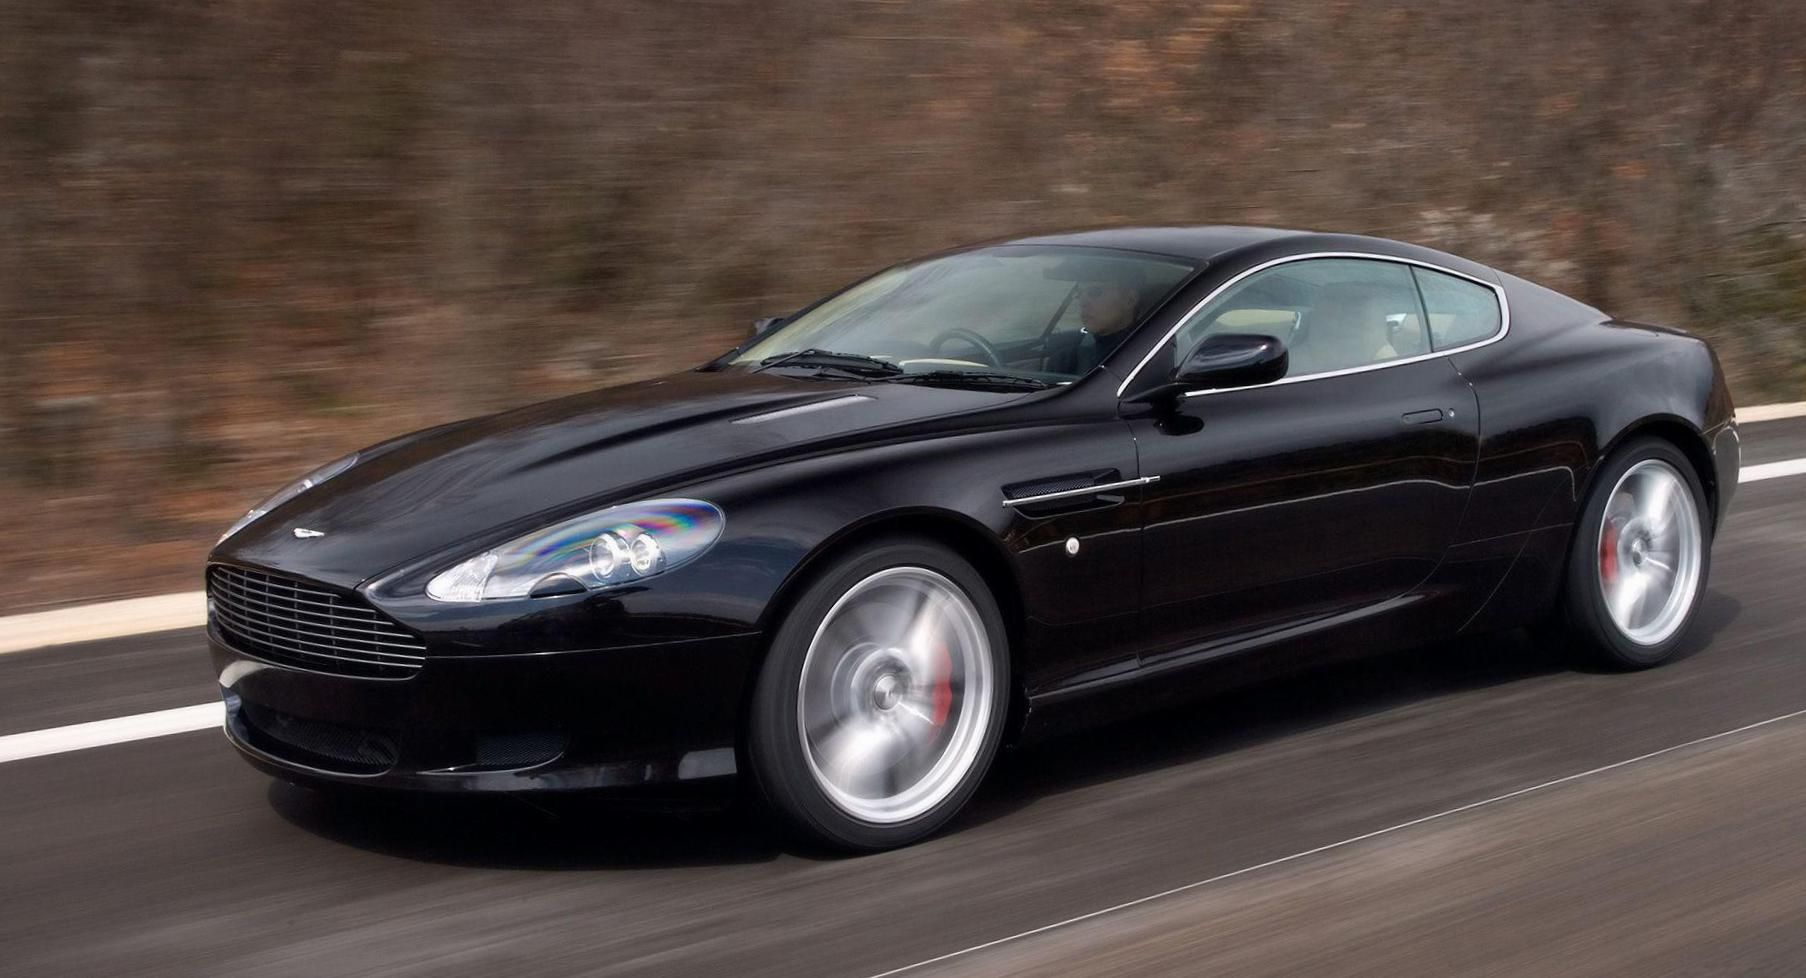 DB Aston Martin Cost Httpautotrascom Auto Pinterest - How much does a aston martin cost